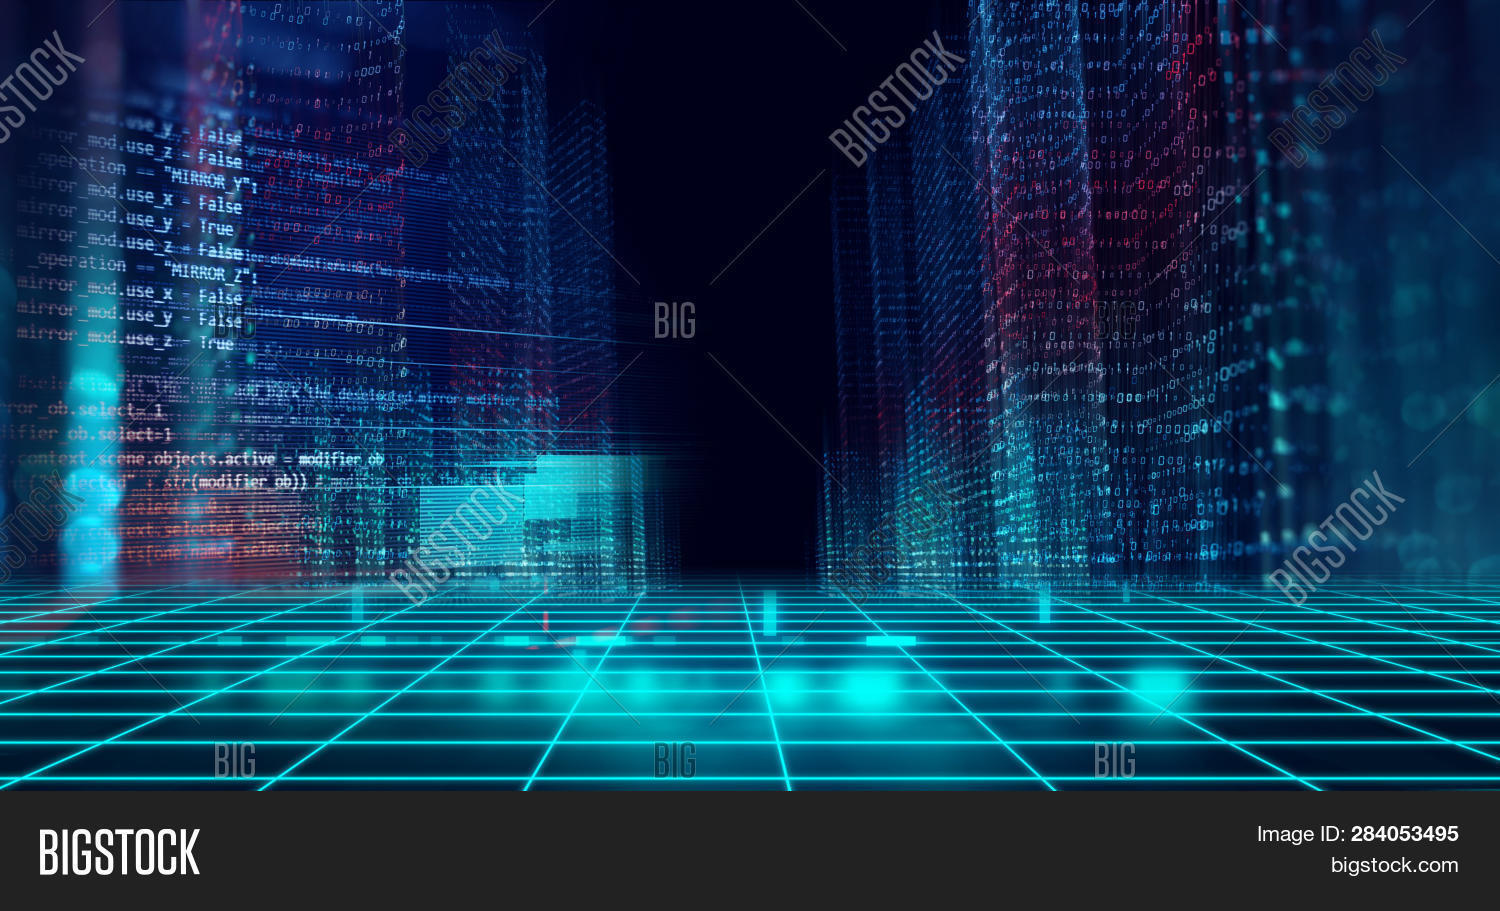 3d,abstract,architecture,background,big,building,business,city,cityscape,communication,computer,construction,cyberspace,data,design,digital,digitizing,dimensional,future,futuristic,geometry,illustration,information,light,network,panoramic,perspective,reality,science,skyline,skyscraper,smart,space,structure,technology,urban,virtual,world